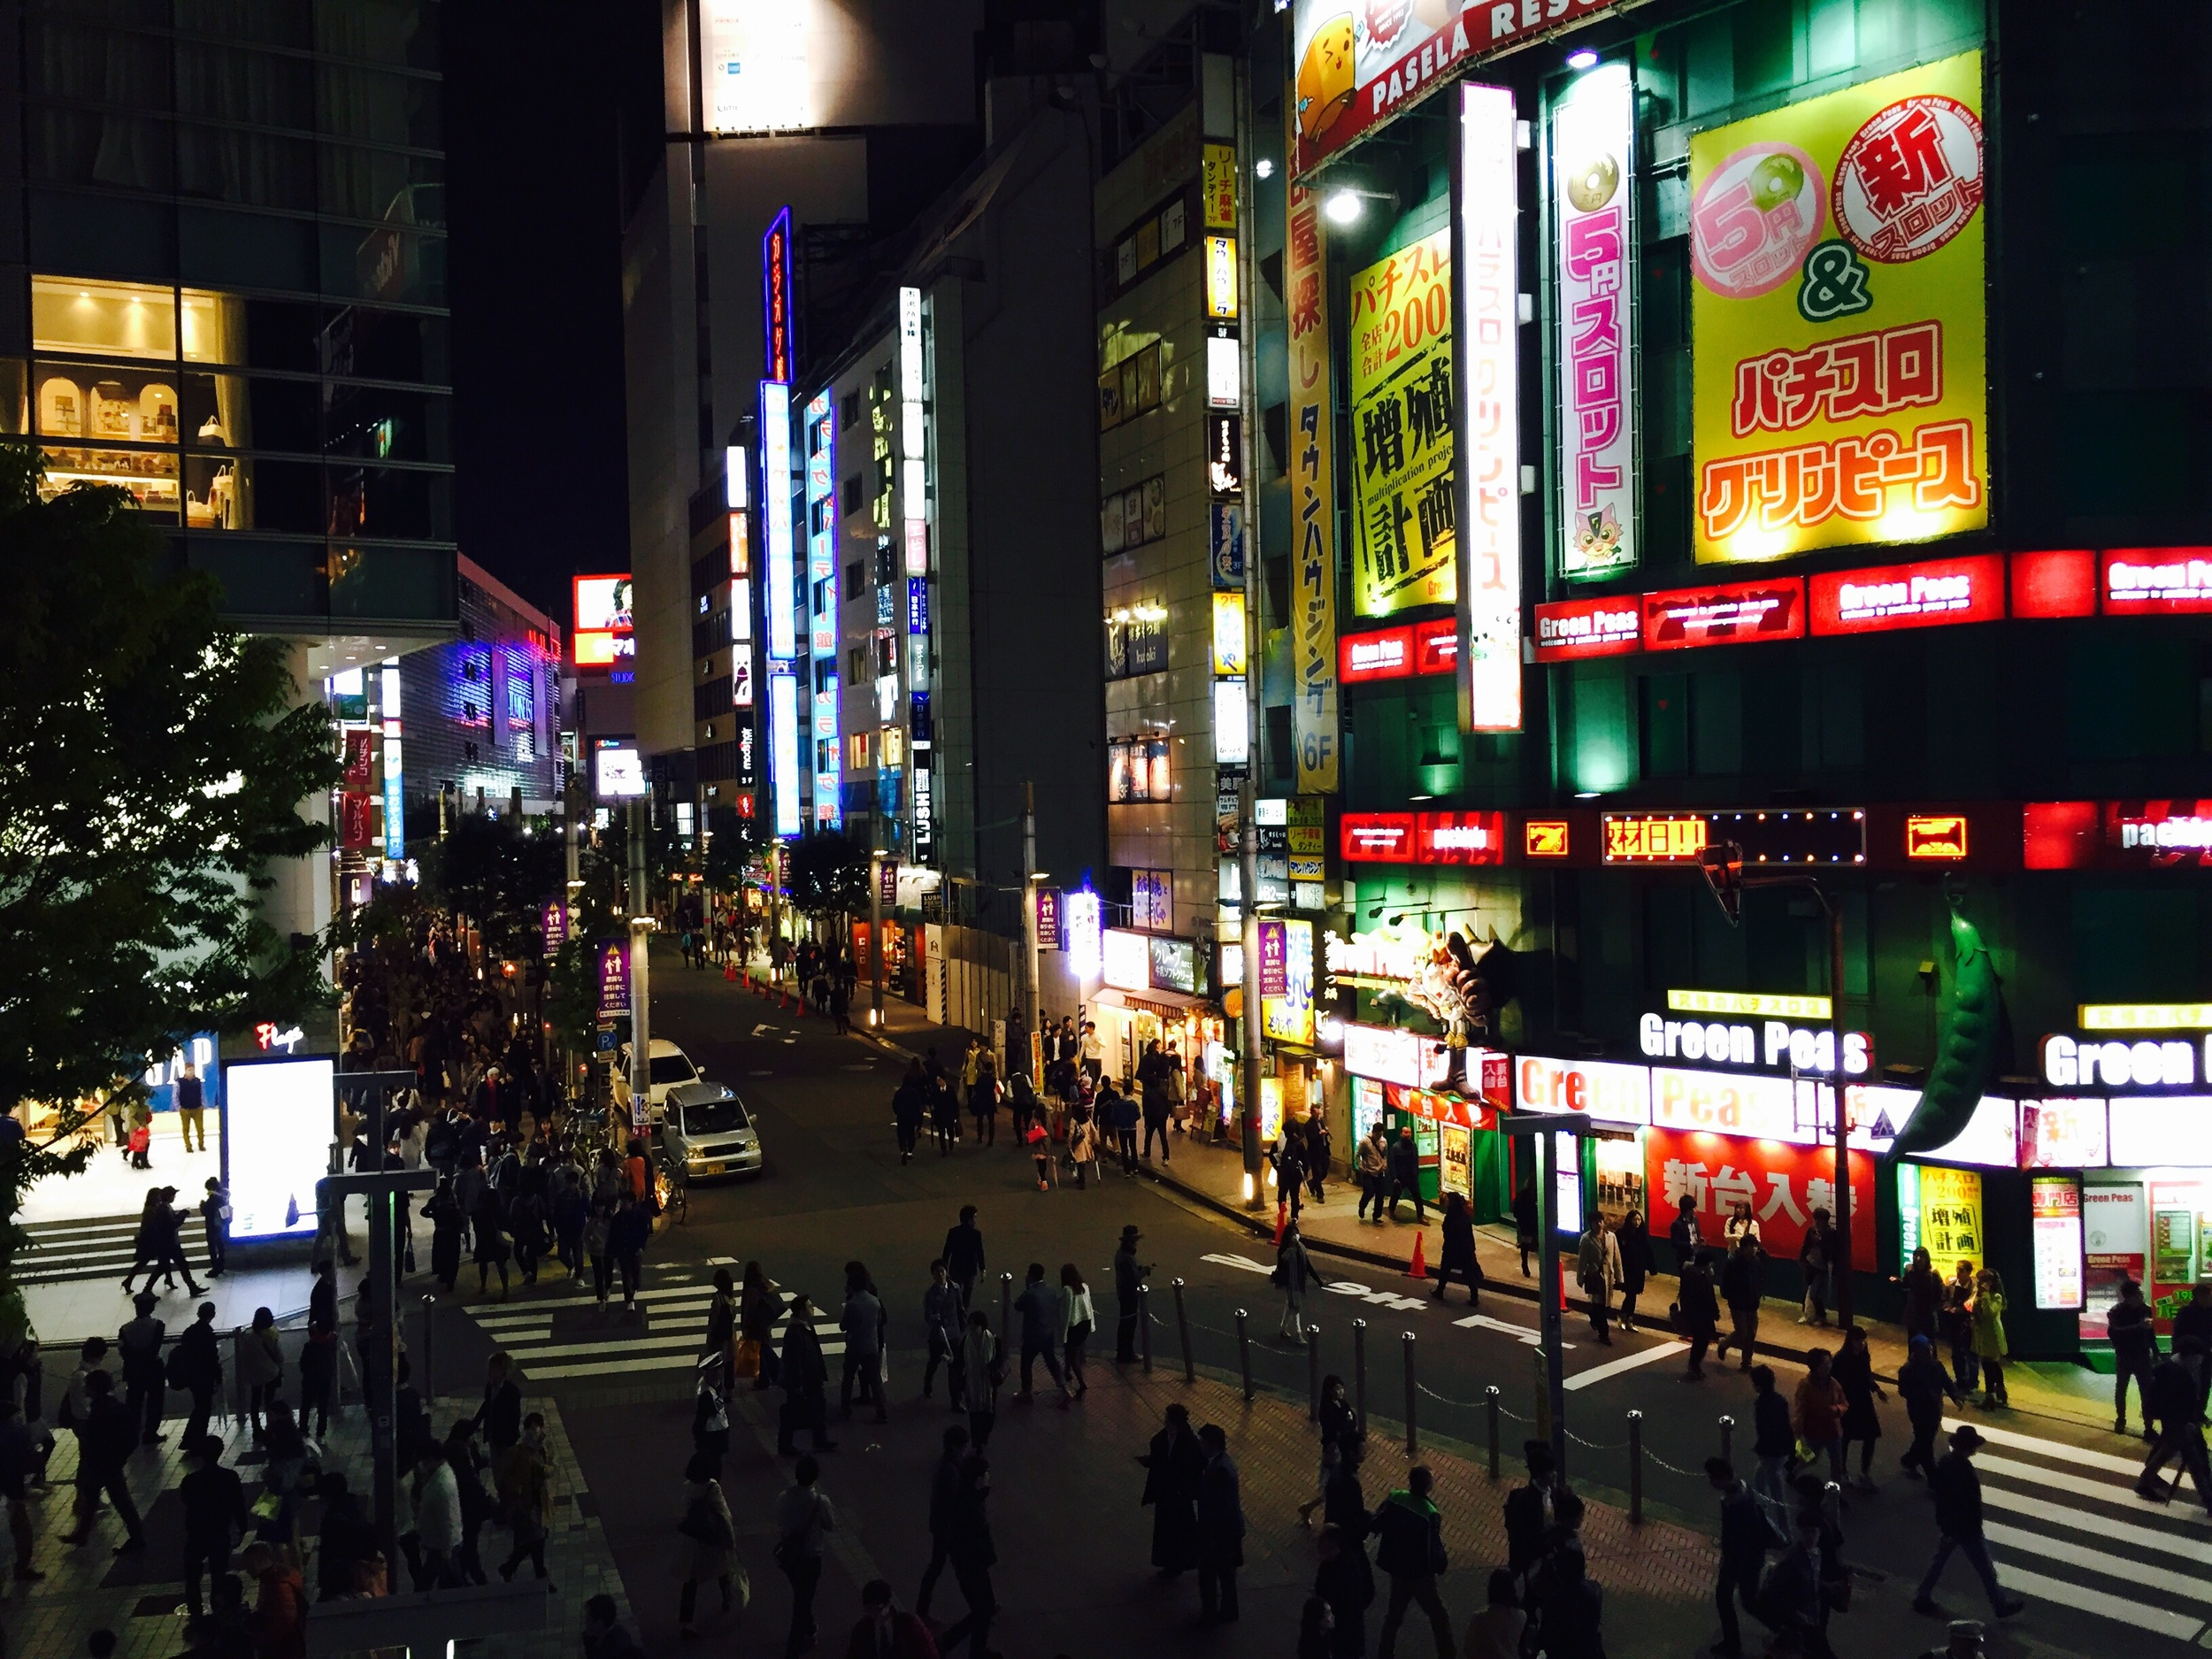 Shinjuku is as busy as busy in Tokyo gets. There are always so many people no matter the time of day.